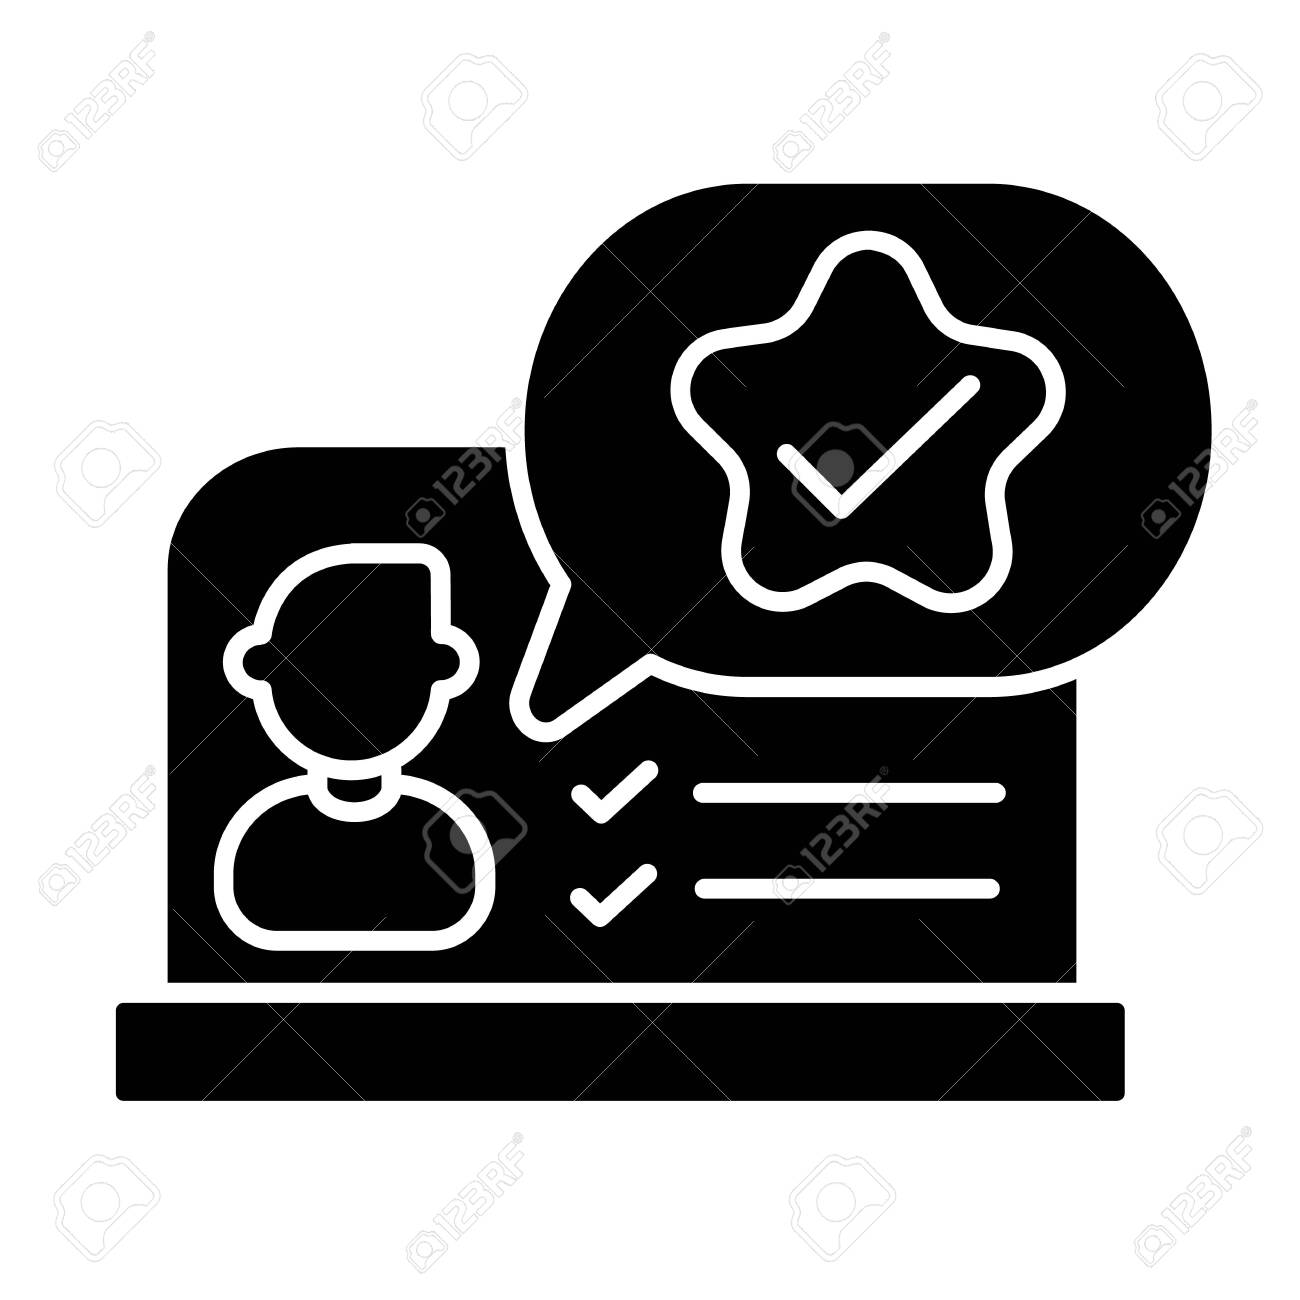 Feedback Black Glyph Icon Online Evaluation Service Hr Management Royalty Free Cliparts Vectors And Stock Illustration Image 153397793 A symbol of good and bad quality. feedback black glyph icon online evaluation service hr management